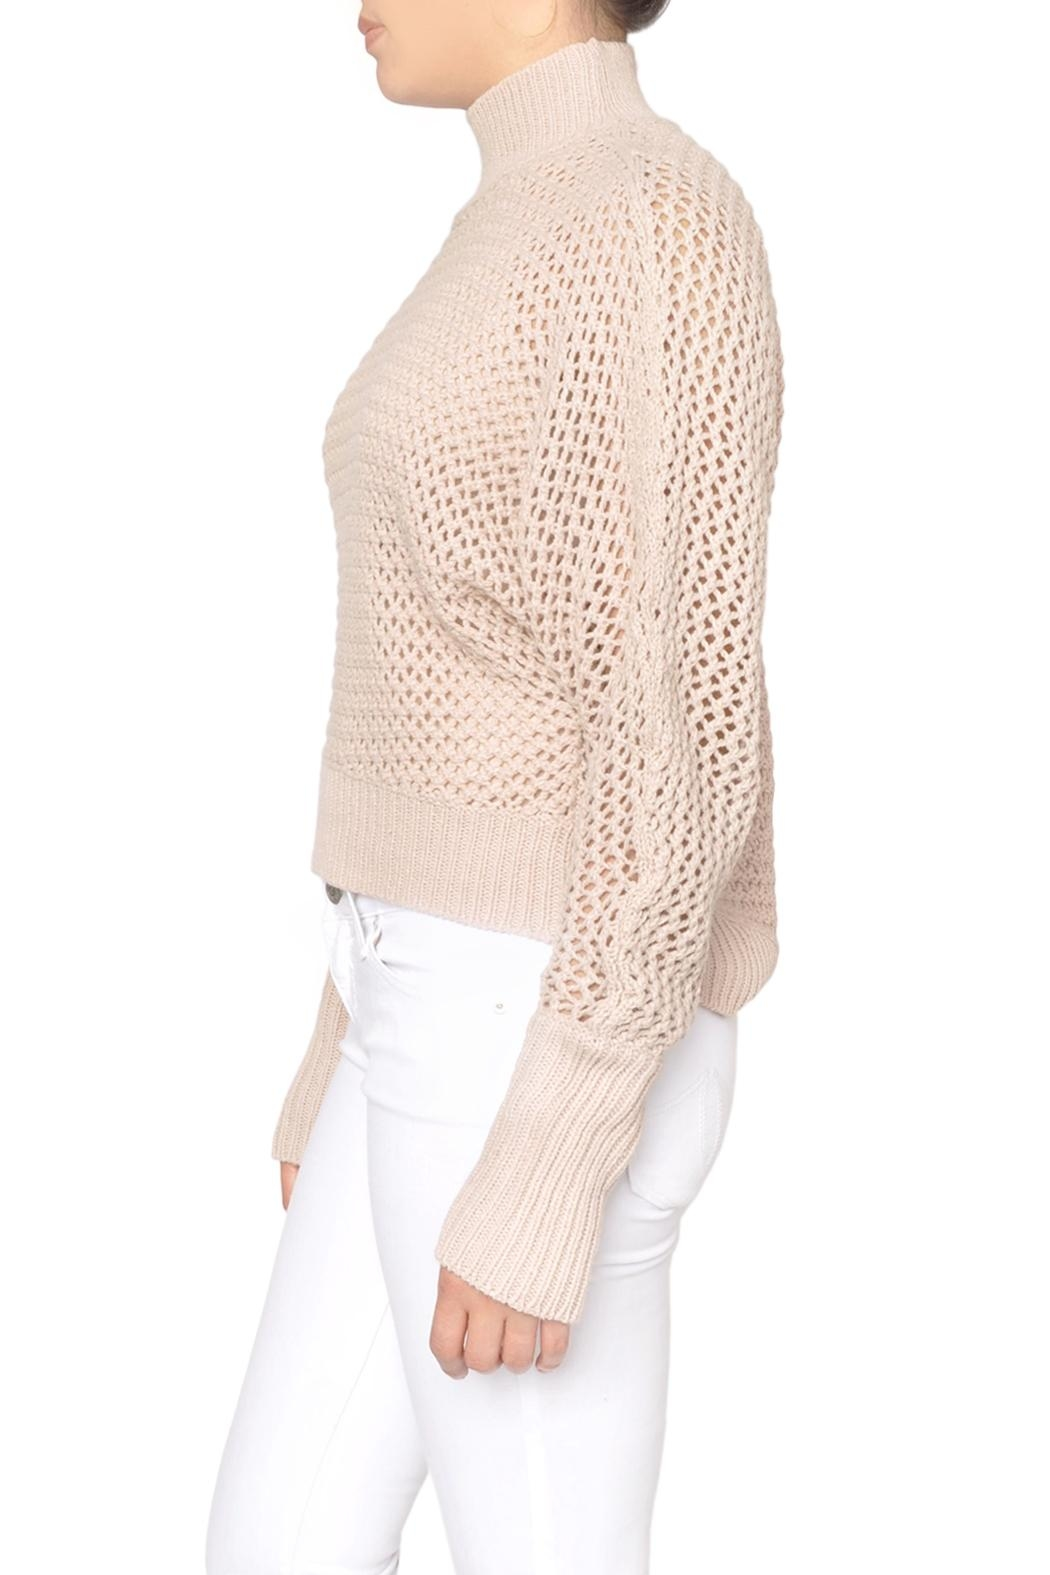 Fifth Label Pink Fishnet Sweater - Front Full Image